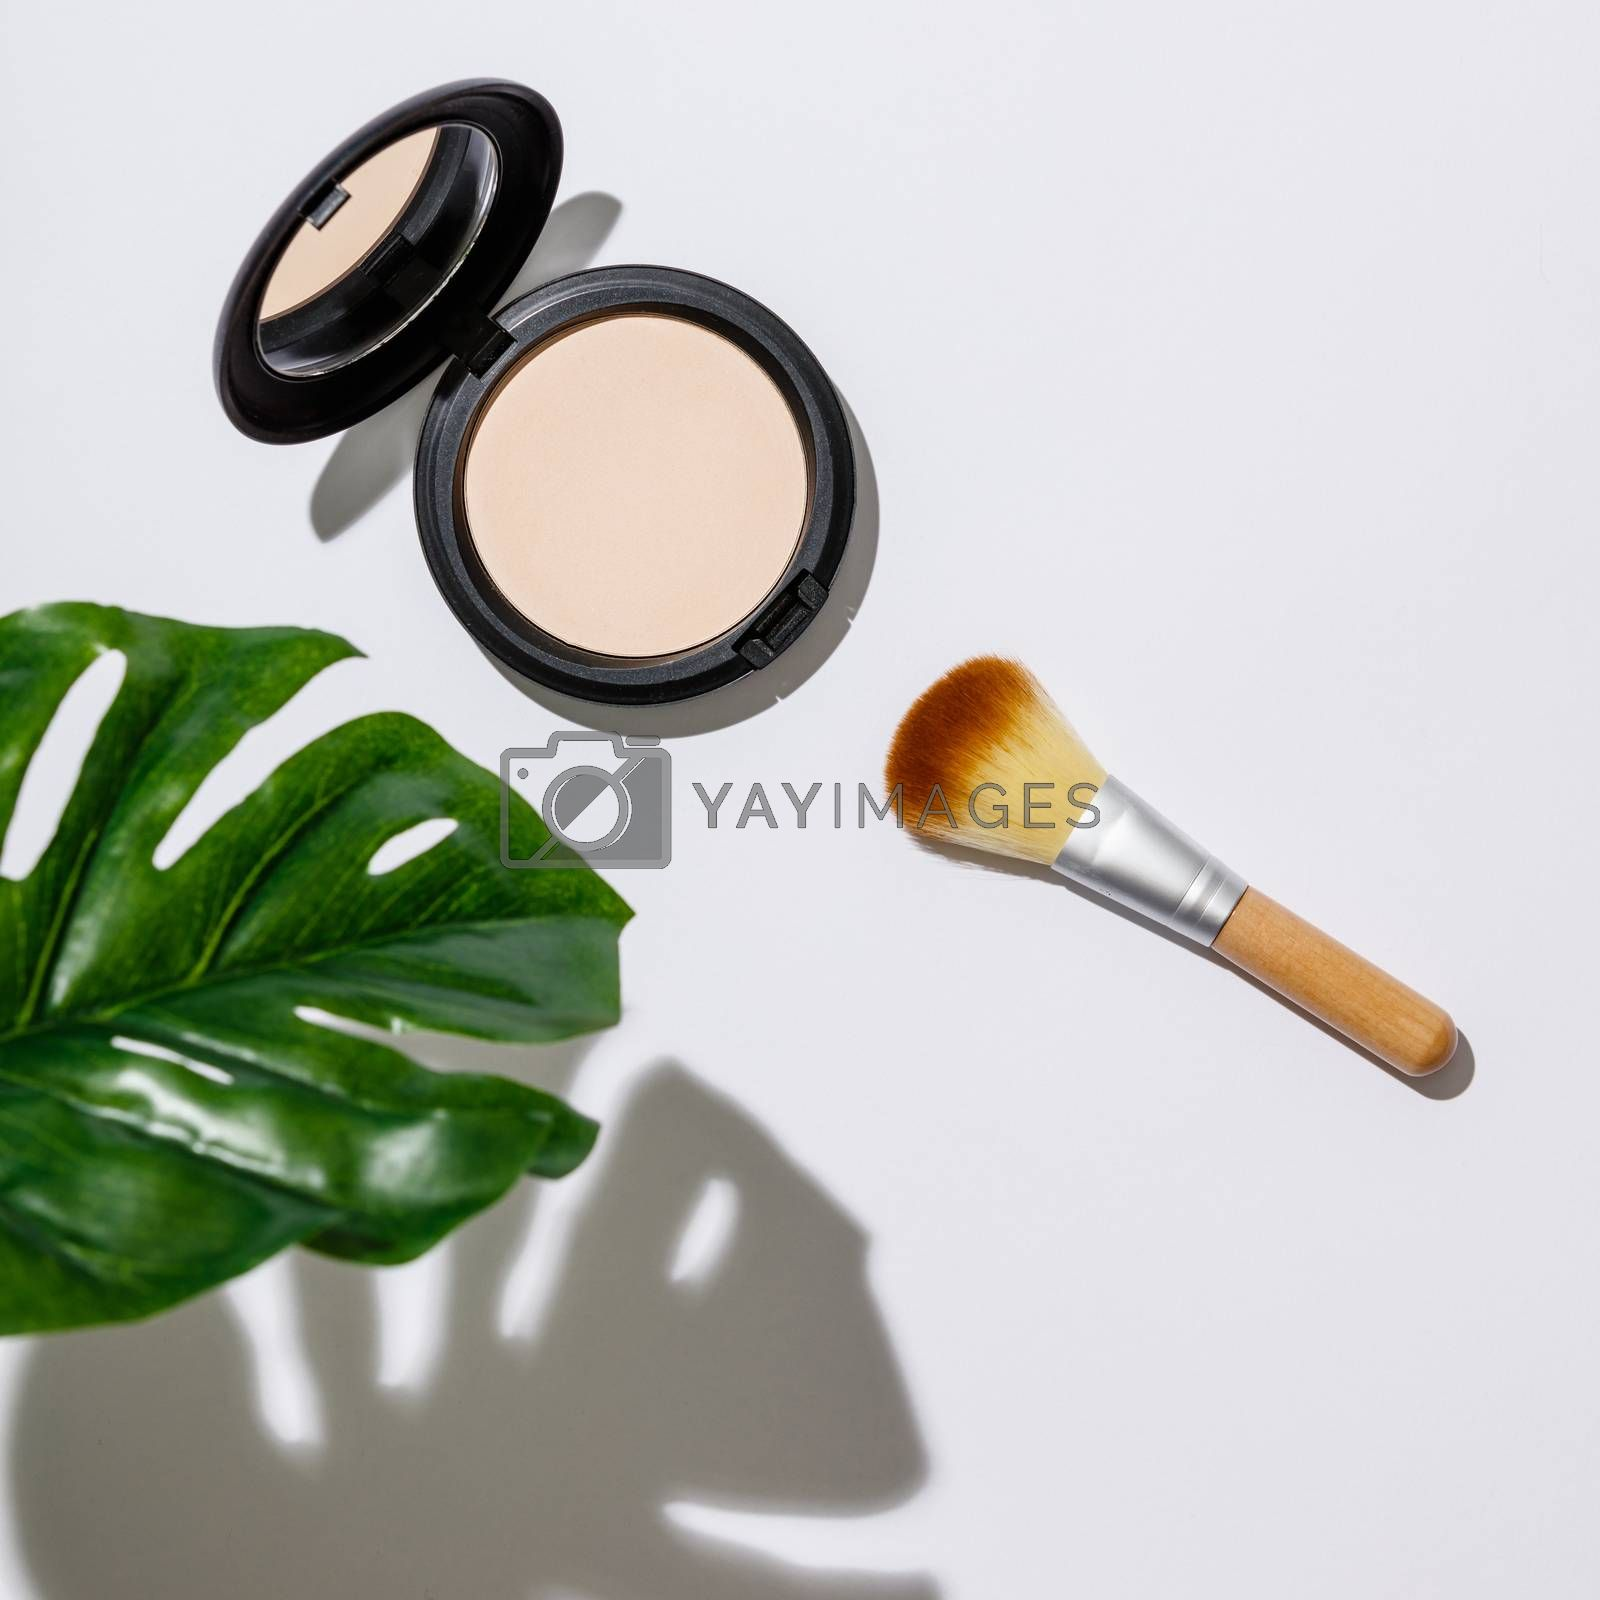 Face powder and brush for makeup and monstera leaves on a white background, flat lay